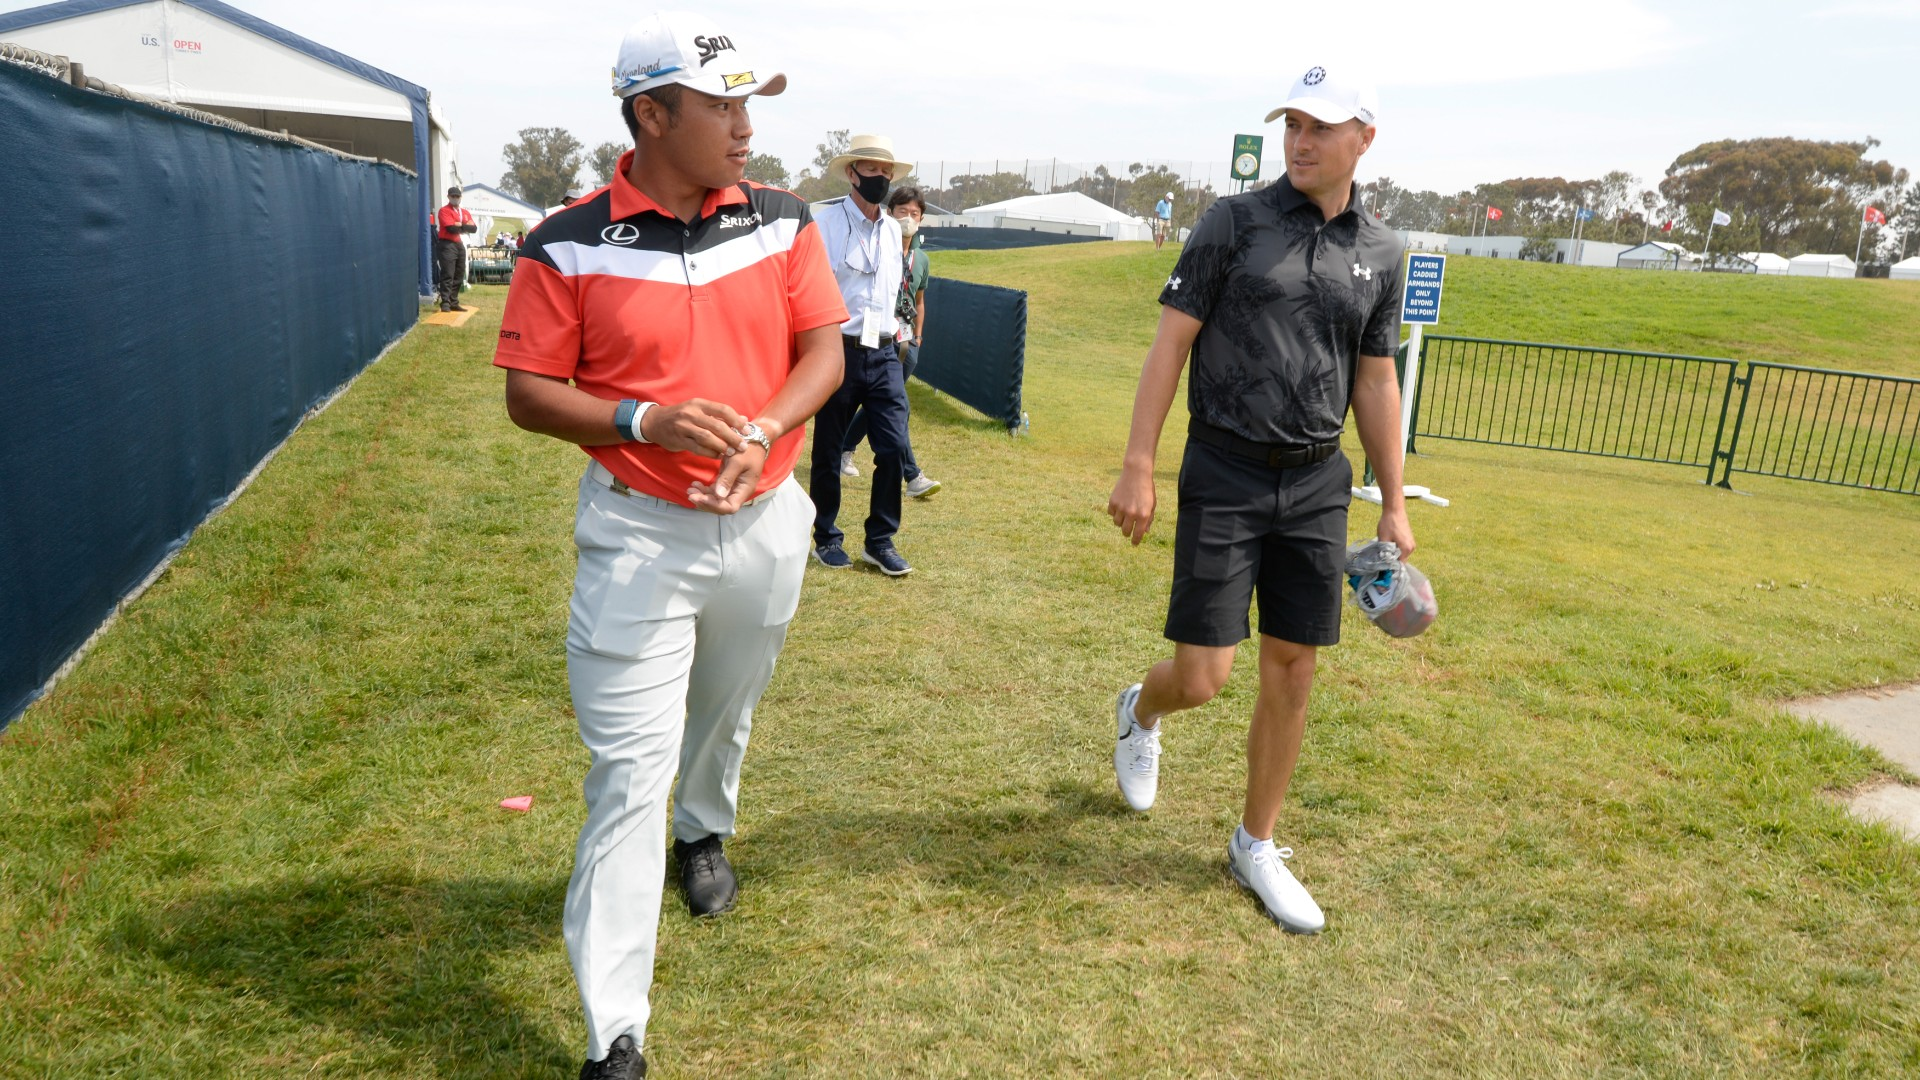 US Open live streams: How to watch live golf coverage ...